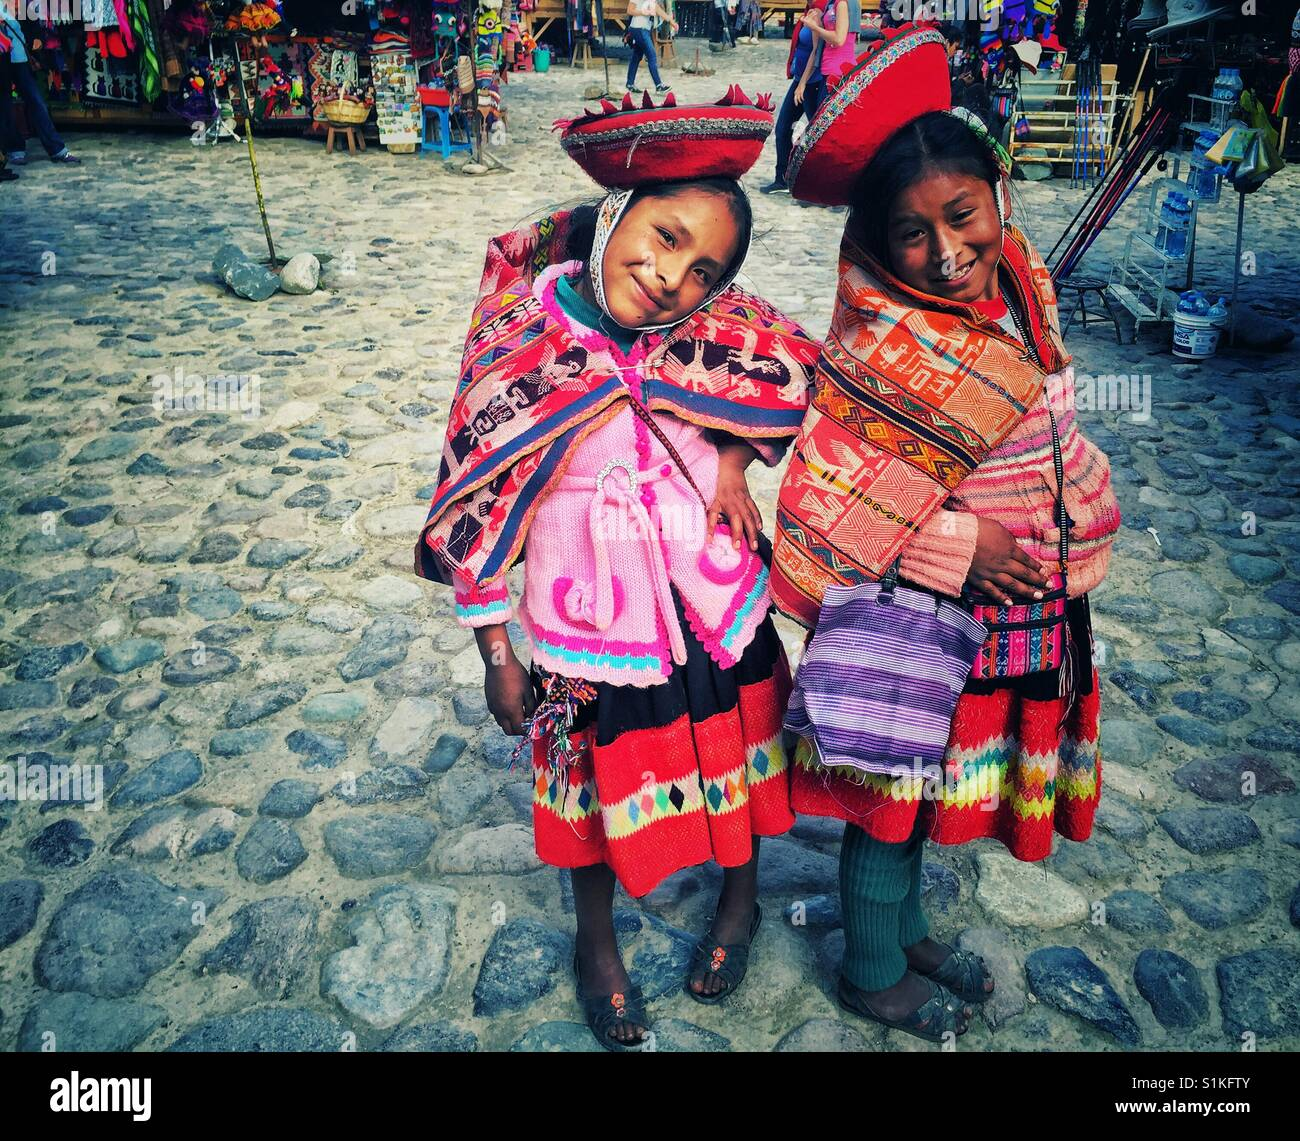 Two young Peruvian girls in traditional clothes posing and smiling for the camera in Ollantaytambo - Stock Image